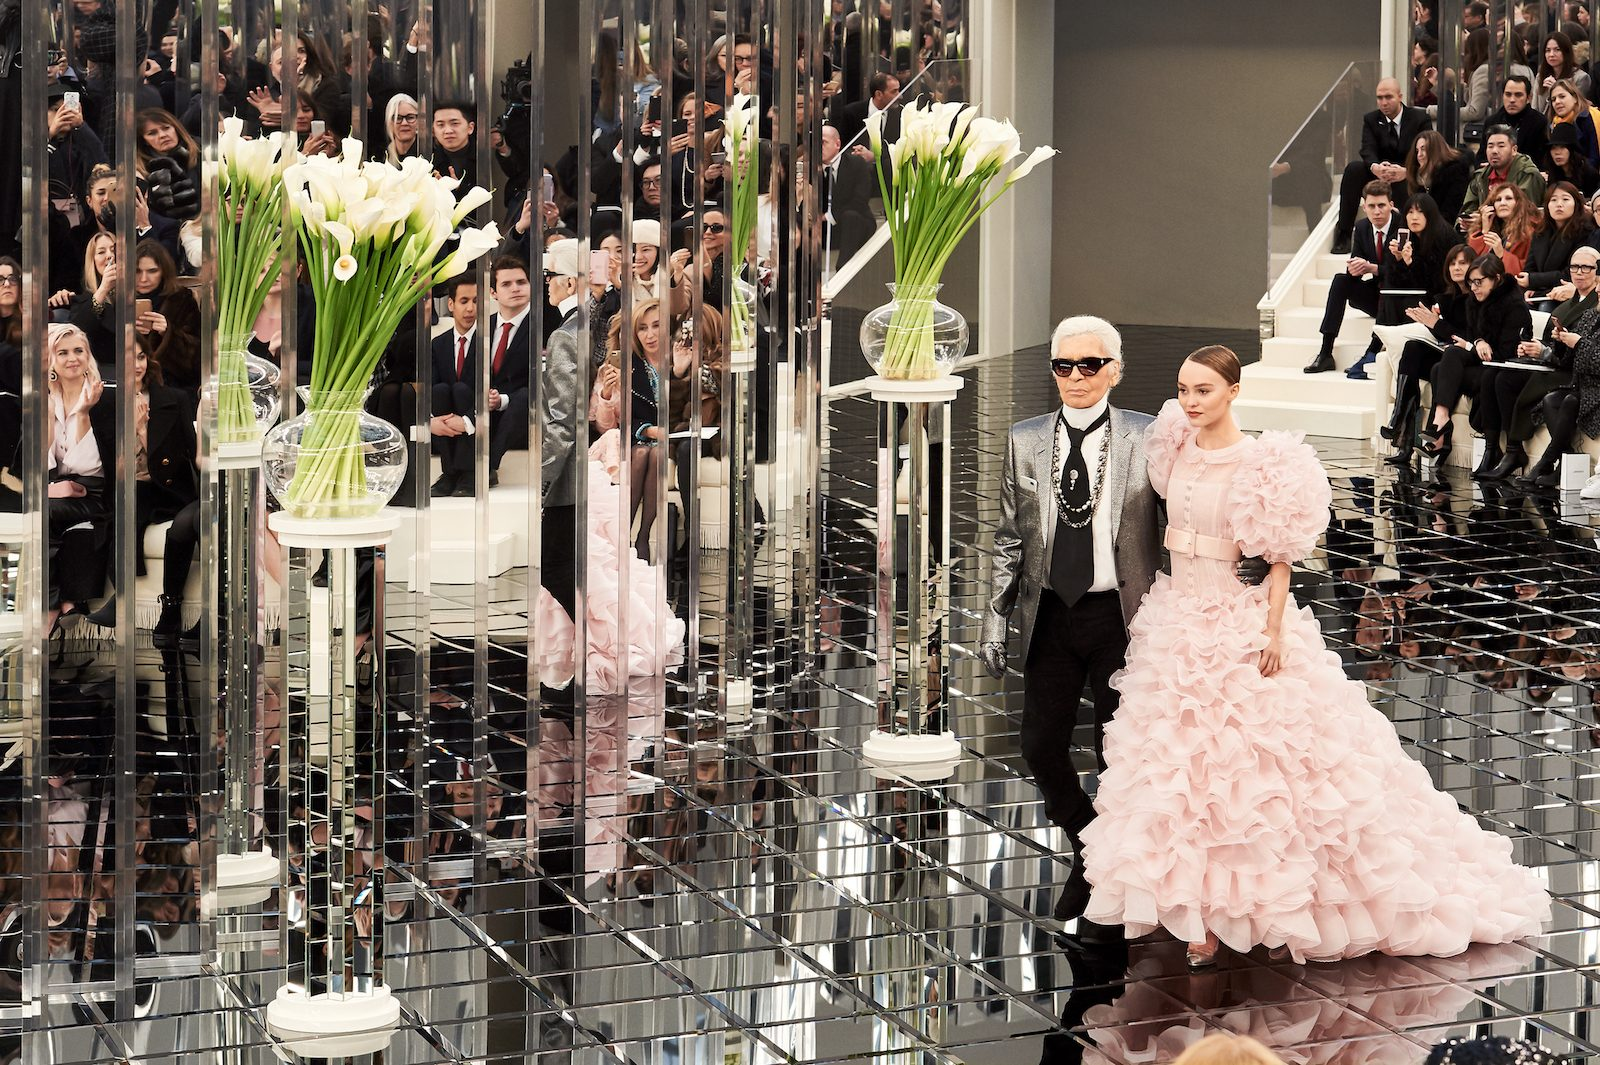 Karl Lagerfeld at the Chanel Haute Couture Show Spring - Summer 2017 at the Grand Palais in Paris. Image: The 6 Million Dollar Story